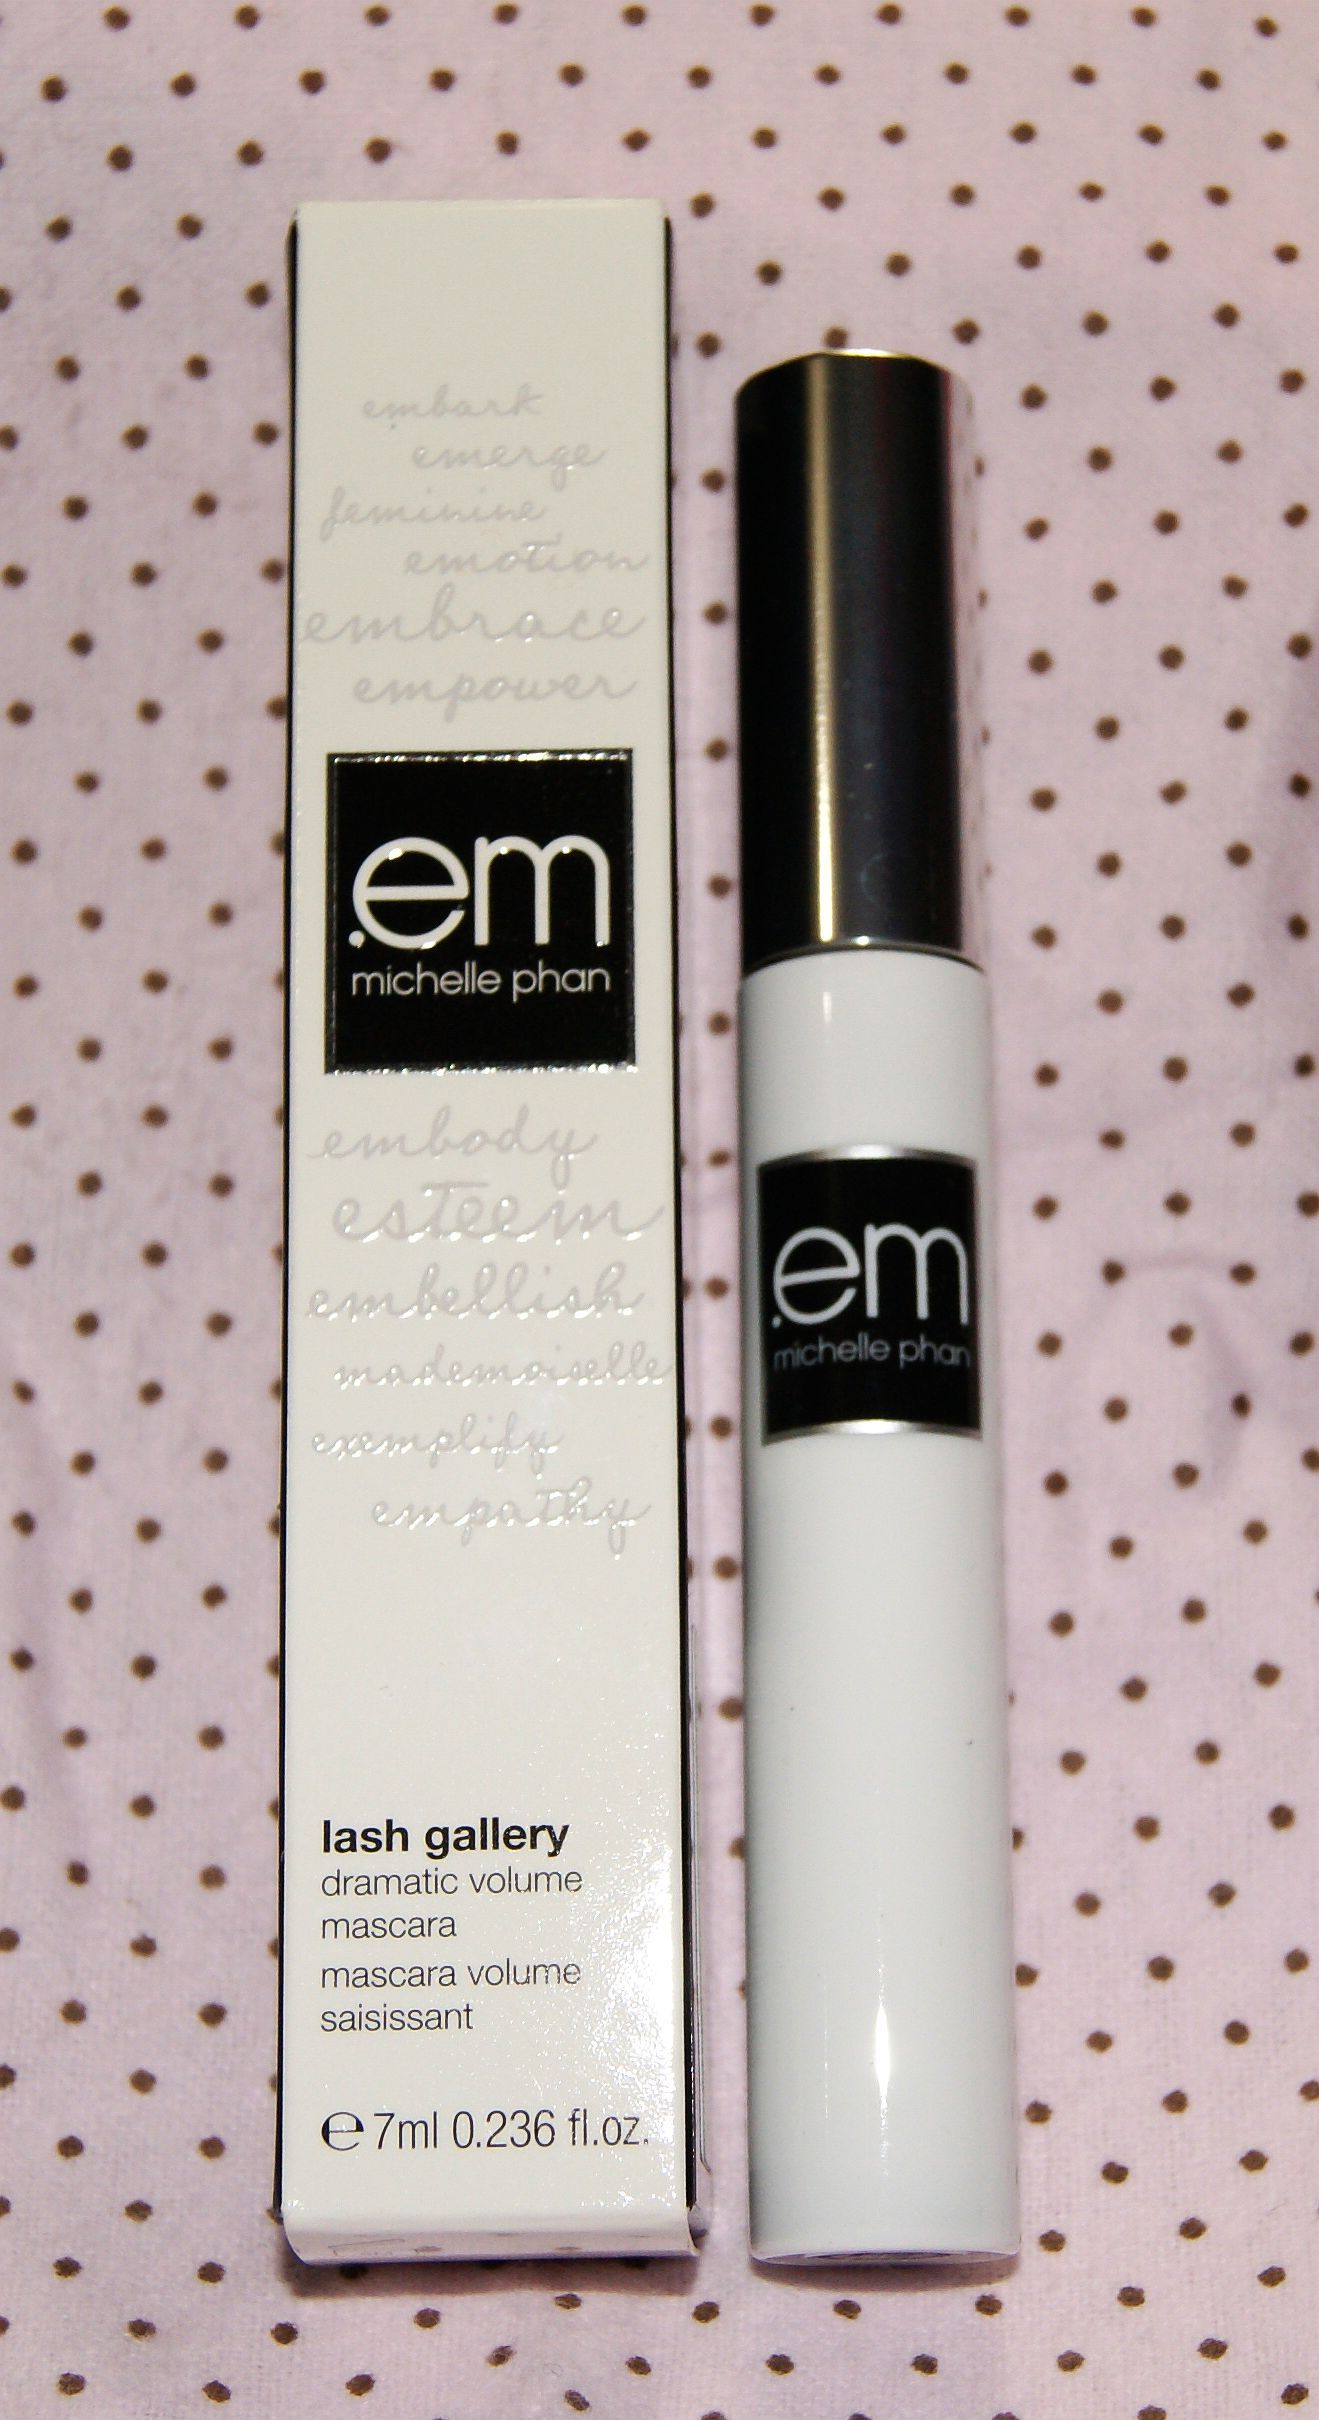 Pending! EM Michelle Phan Lash Gallery Dramatic Volume Mascara in Brown - full size, new